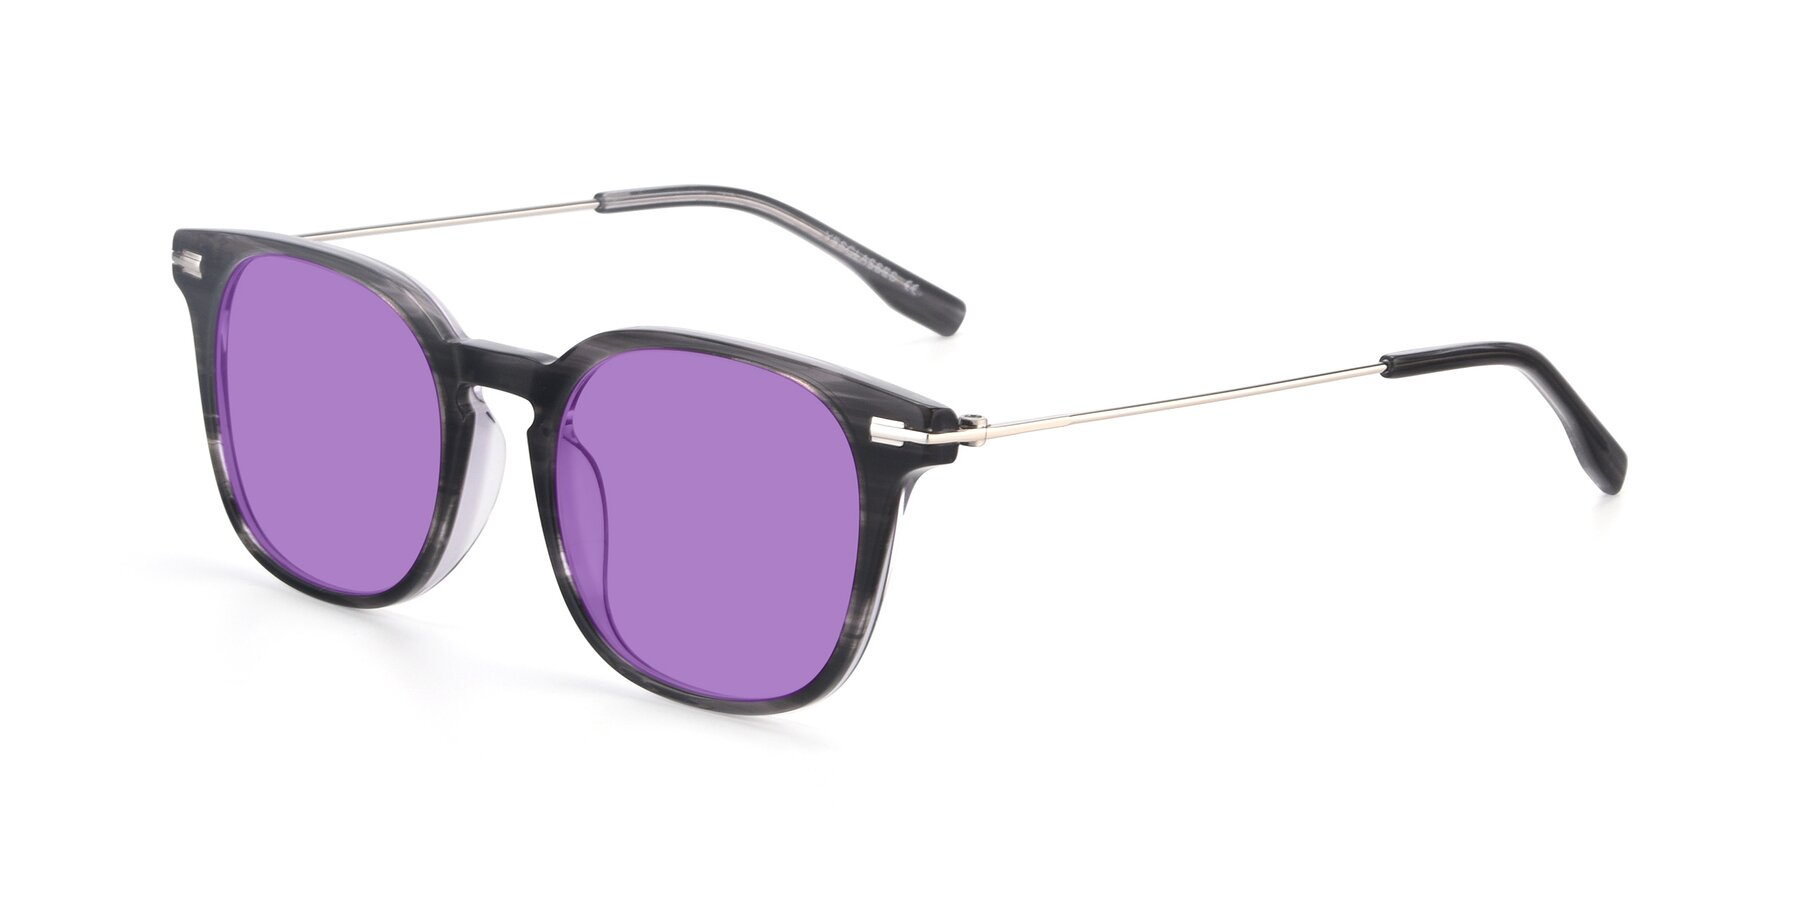 Angle of 17711 in Grey with Medium Purple Tinted Lenses